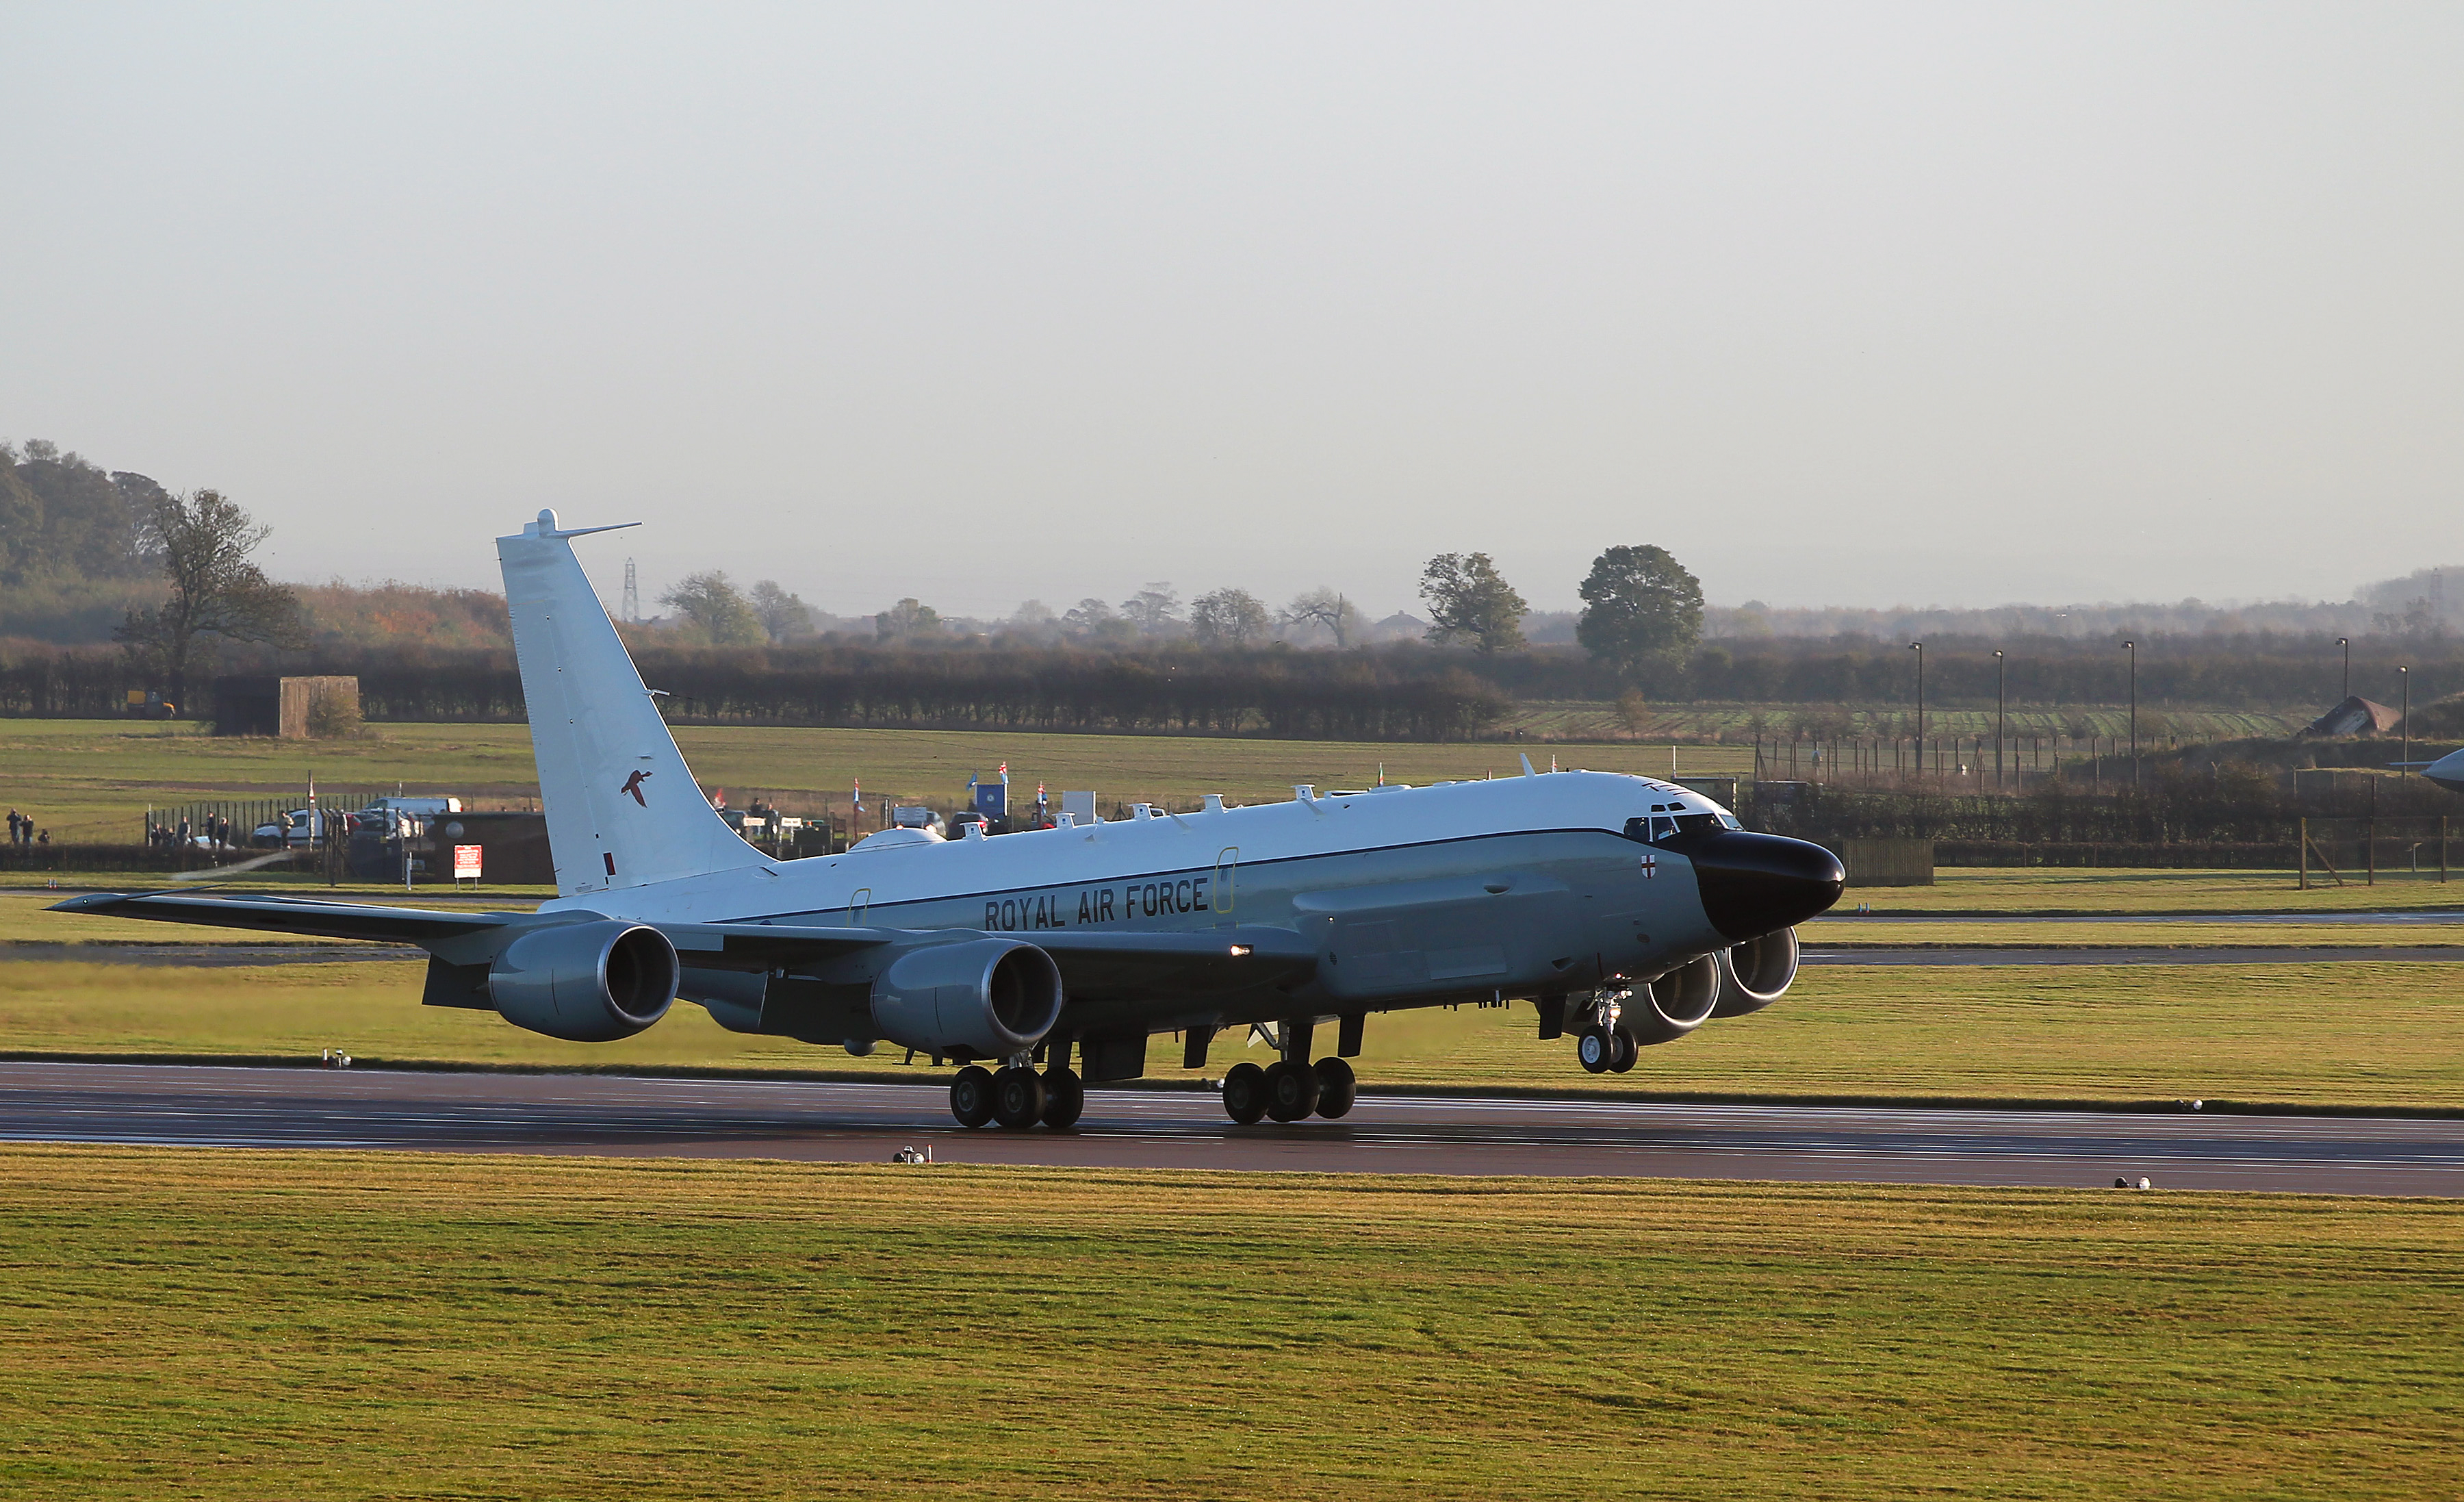 The UK's first Rivet Joint surveillance aircraft is pictured landing at RAF Waddington in November 2013.